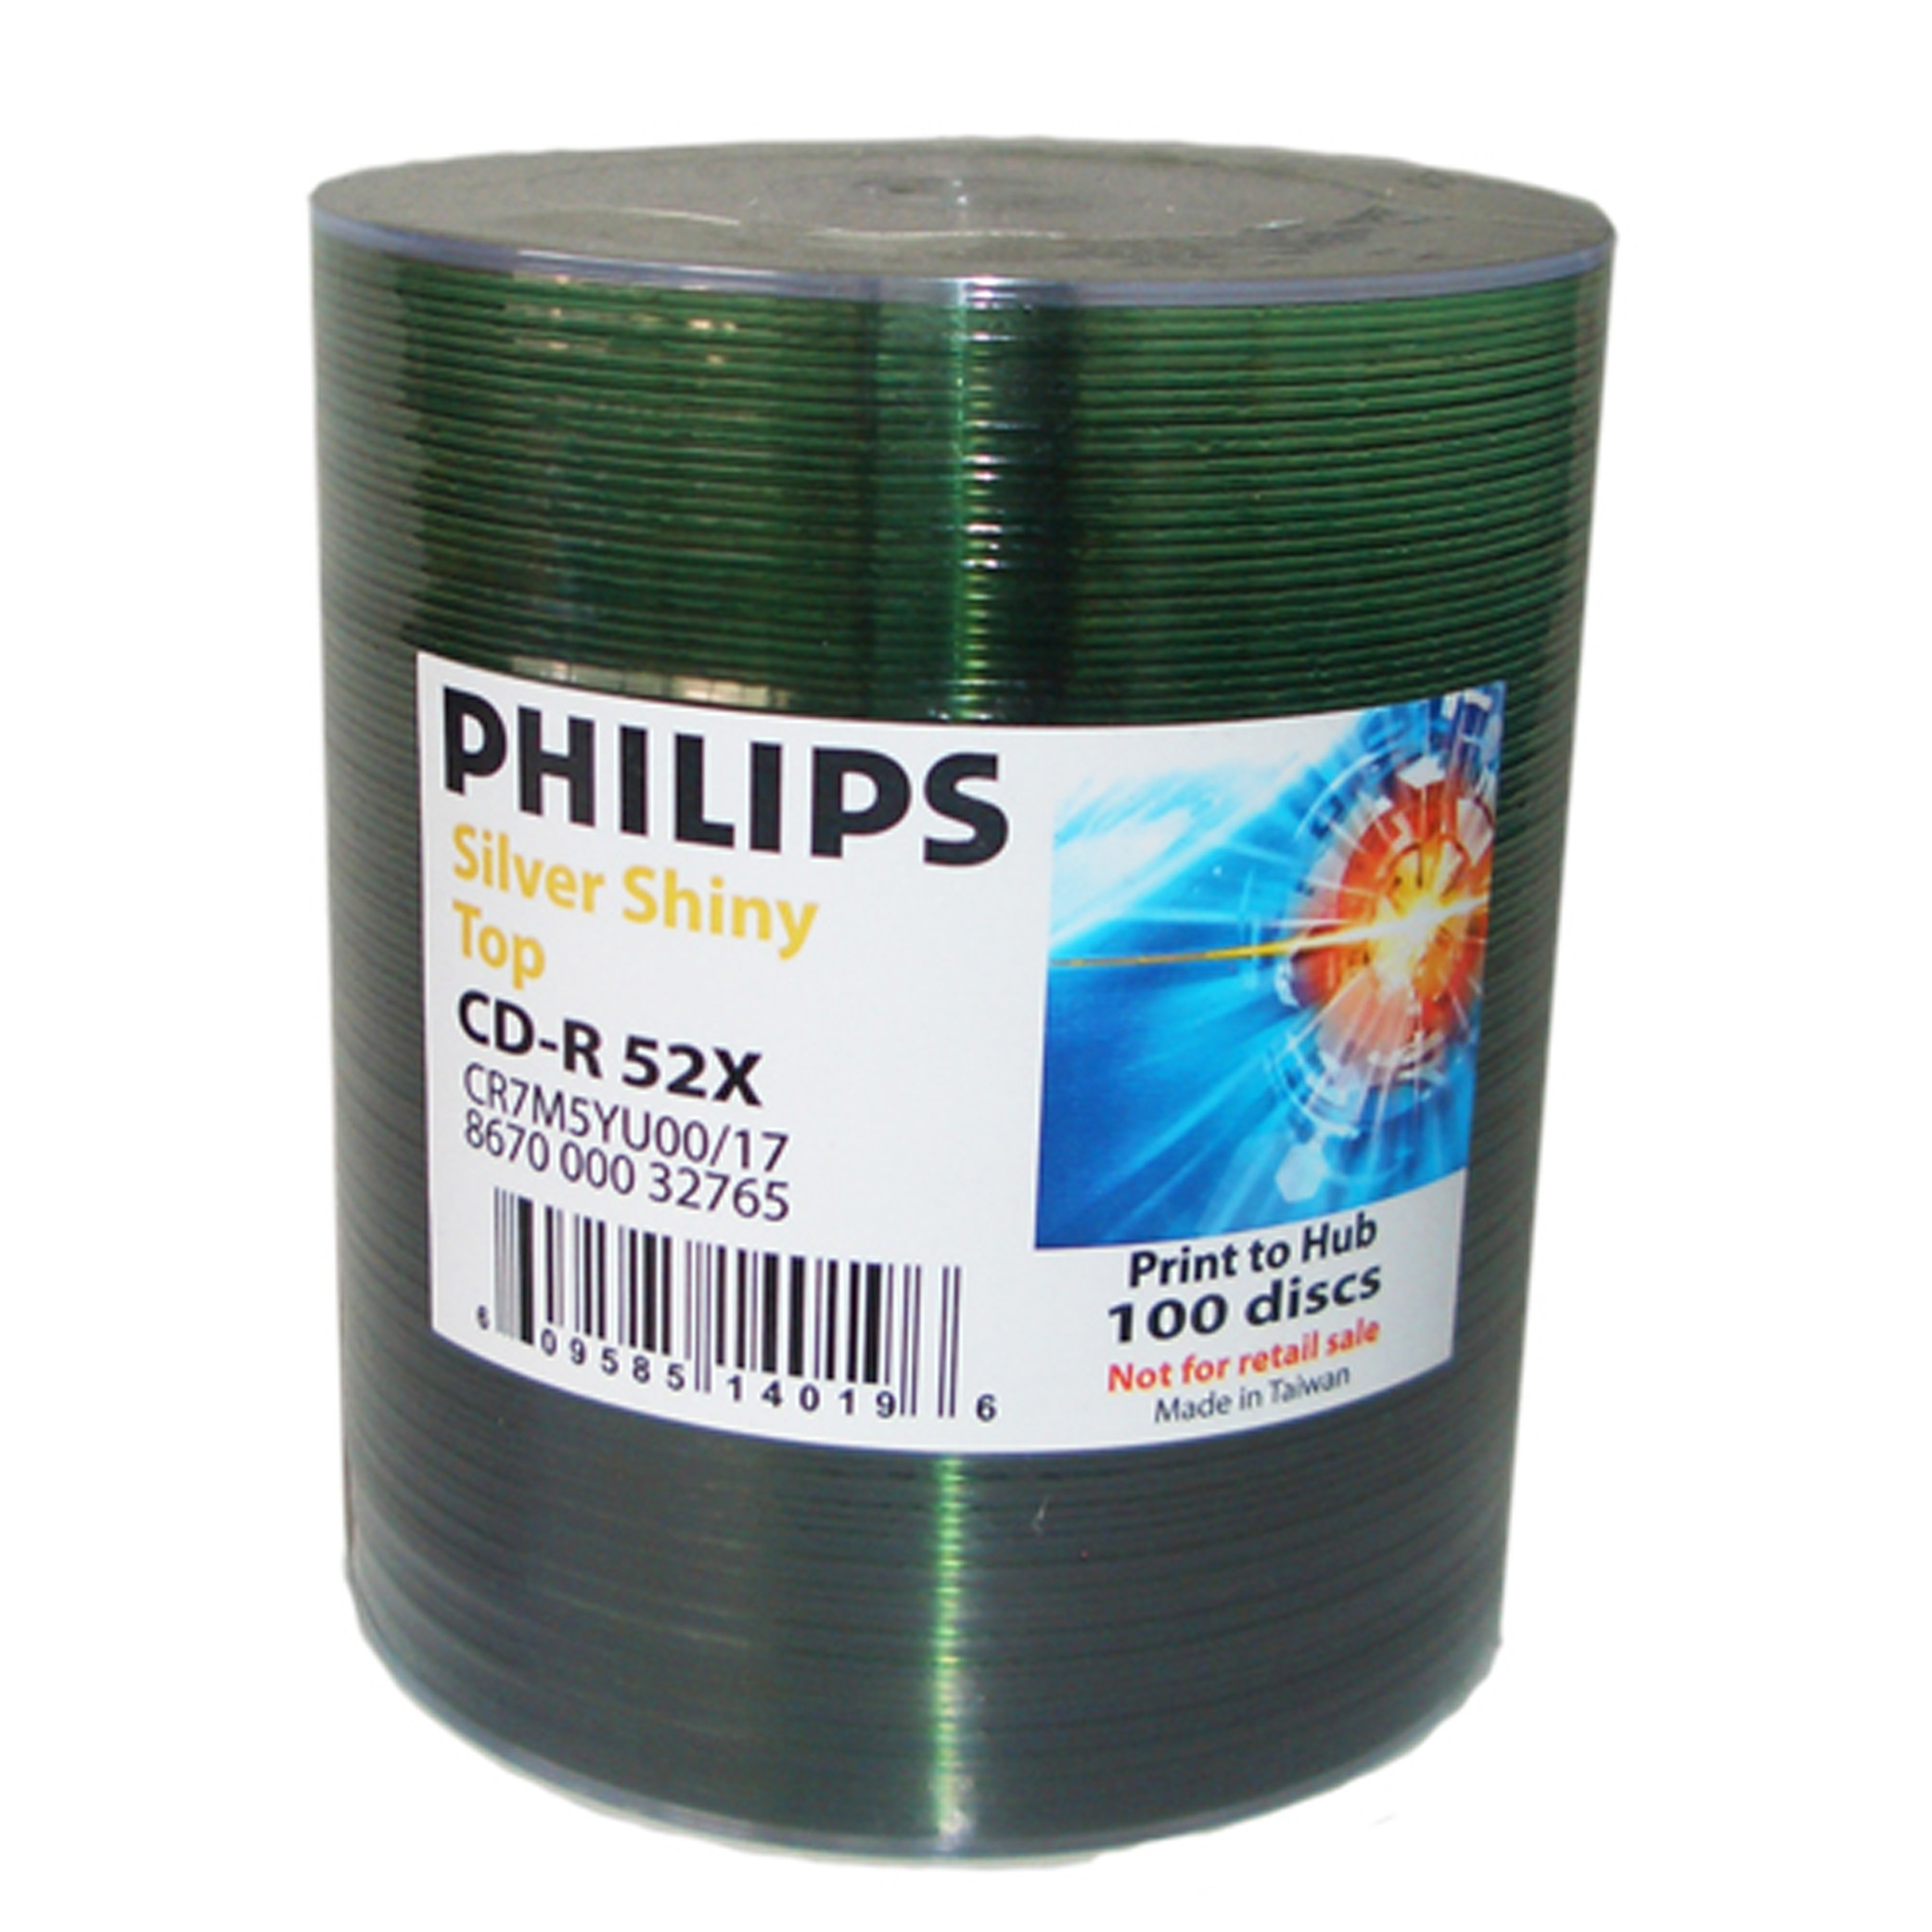 Philips CD-R 52X Shiny Silver 100 pack